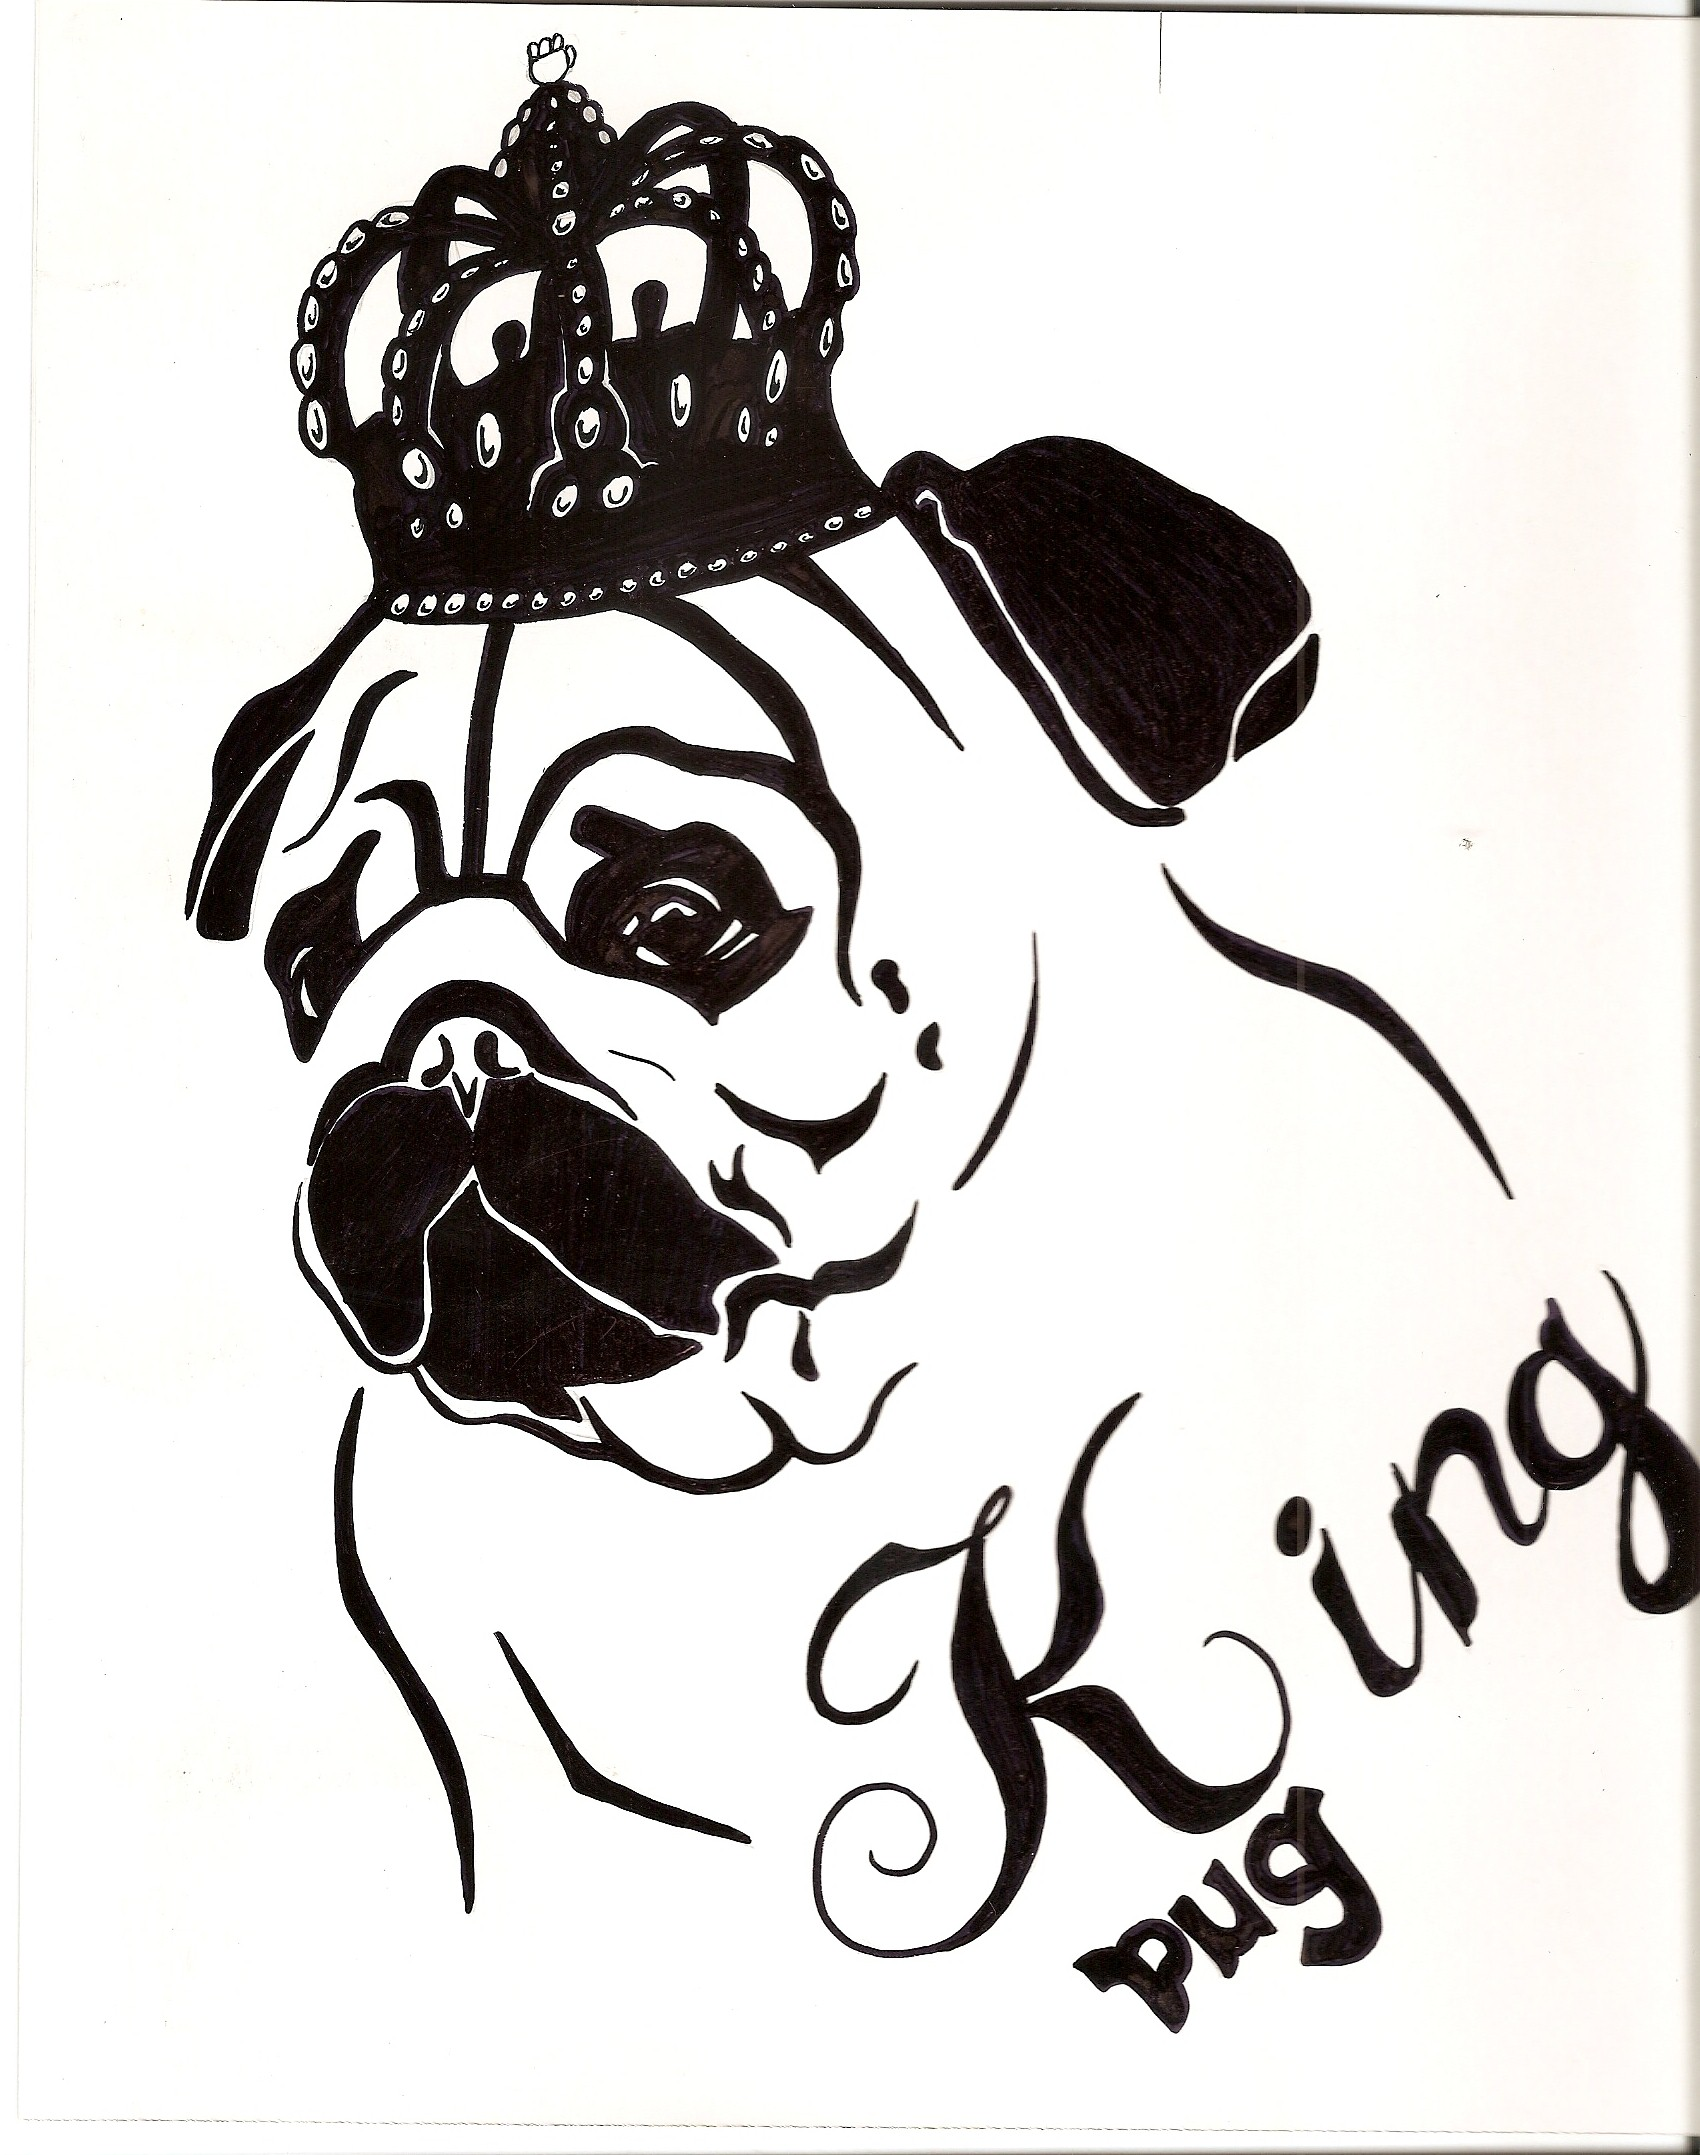 pugs coloring pages to print - photo#10